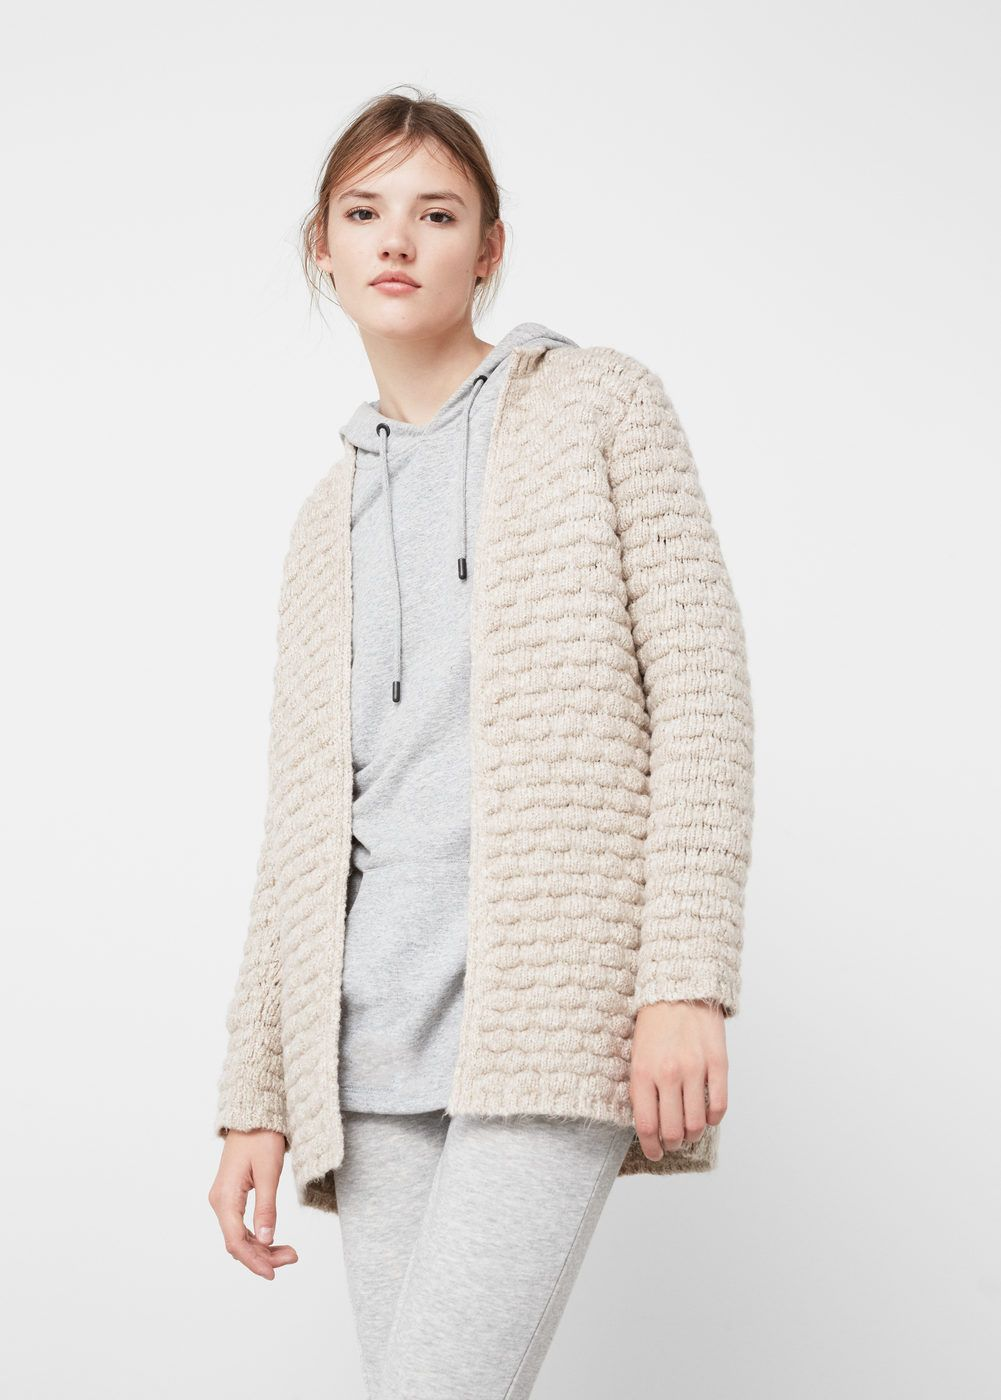 Textured cotton cardigan | Cotton, Winter essentials and Clothing